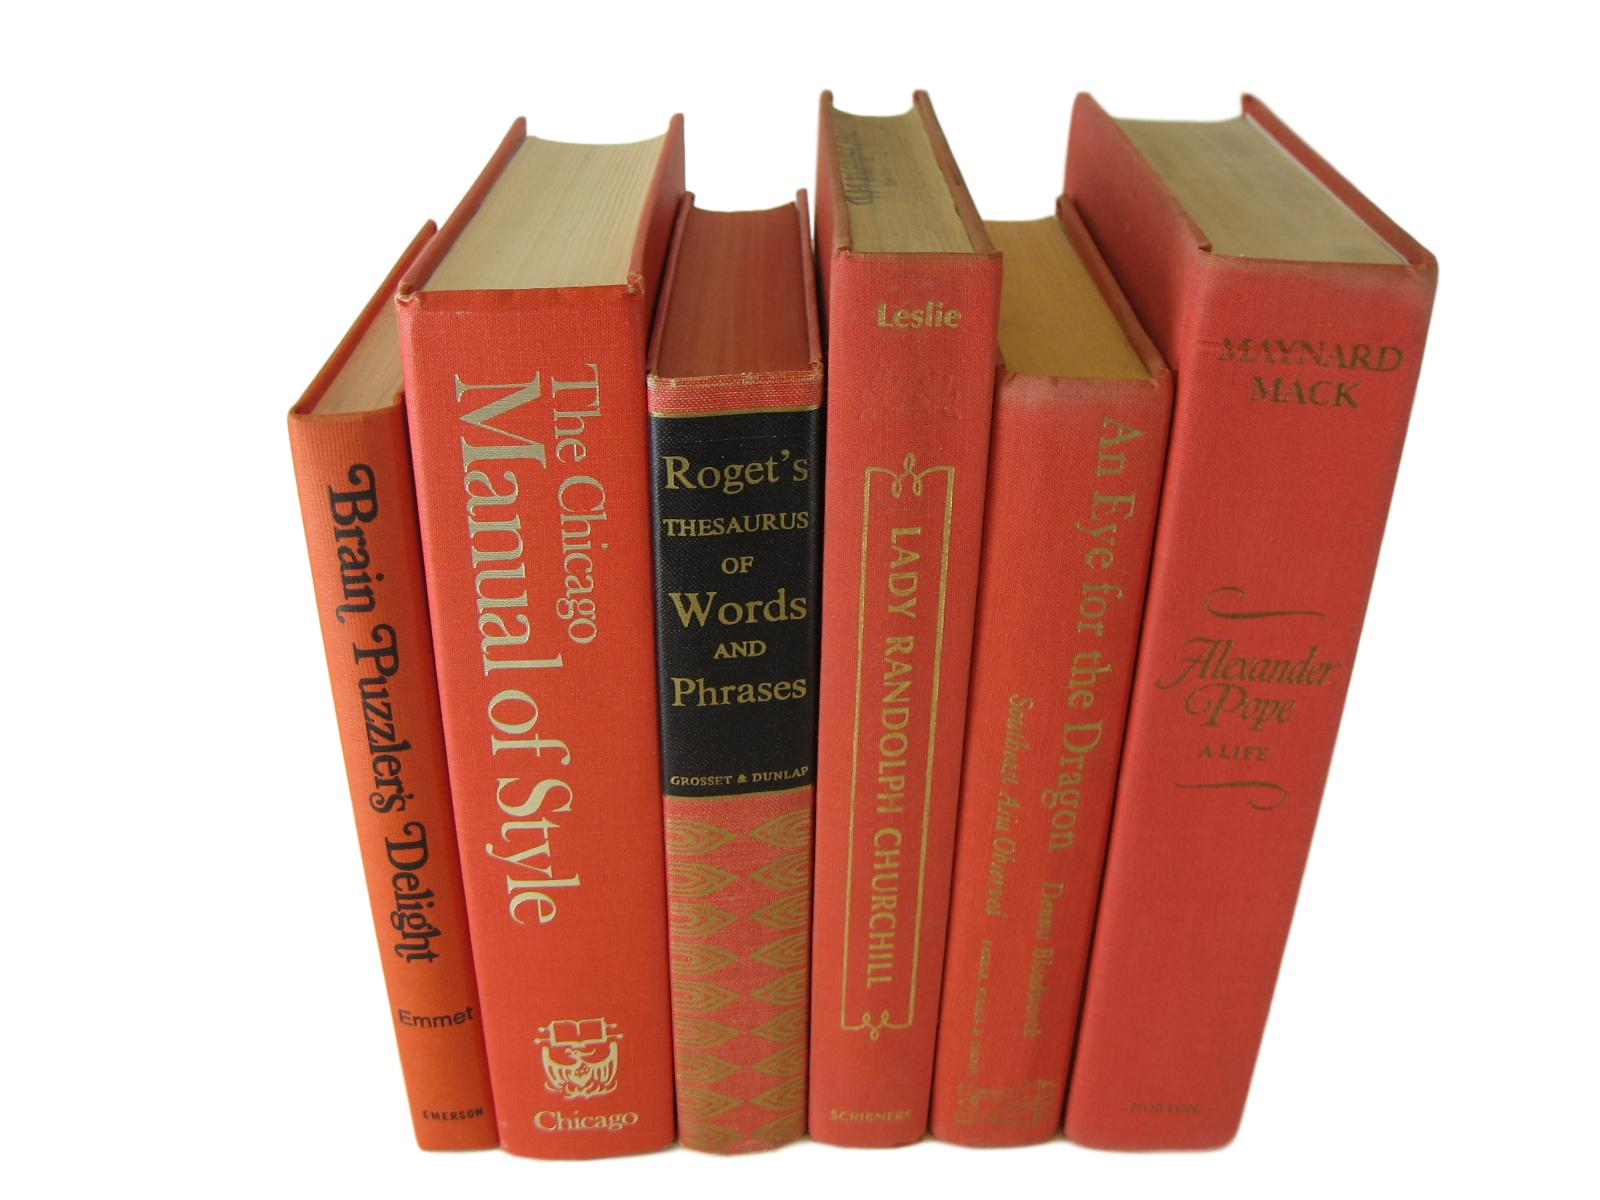 Orange Books for Decorating with Old Books, S/6 - Decades of Vintage